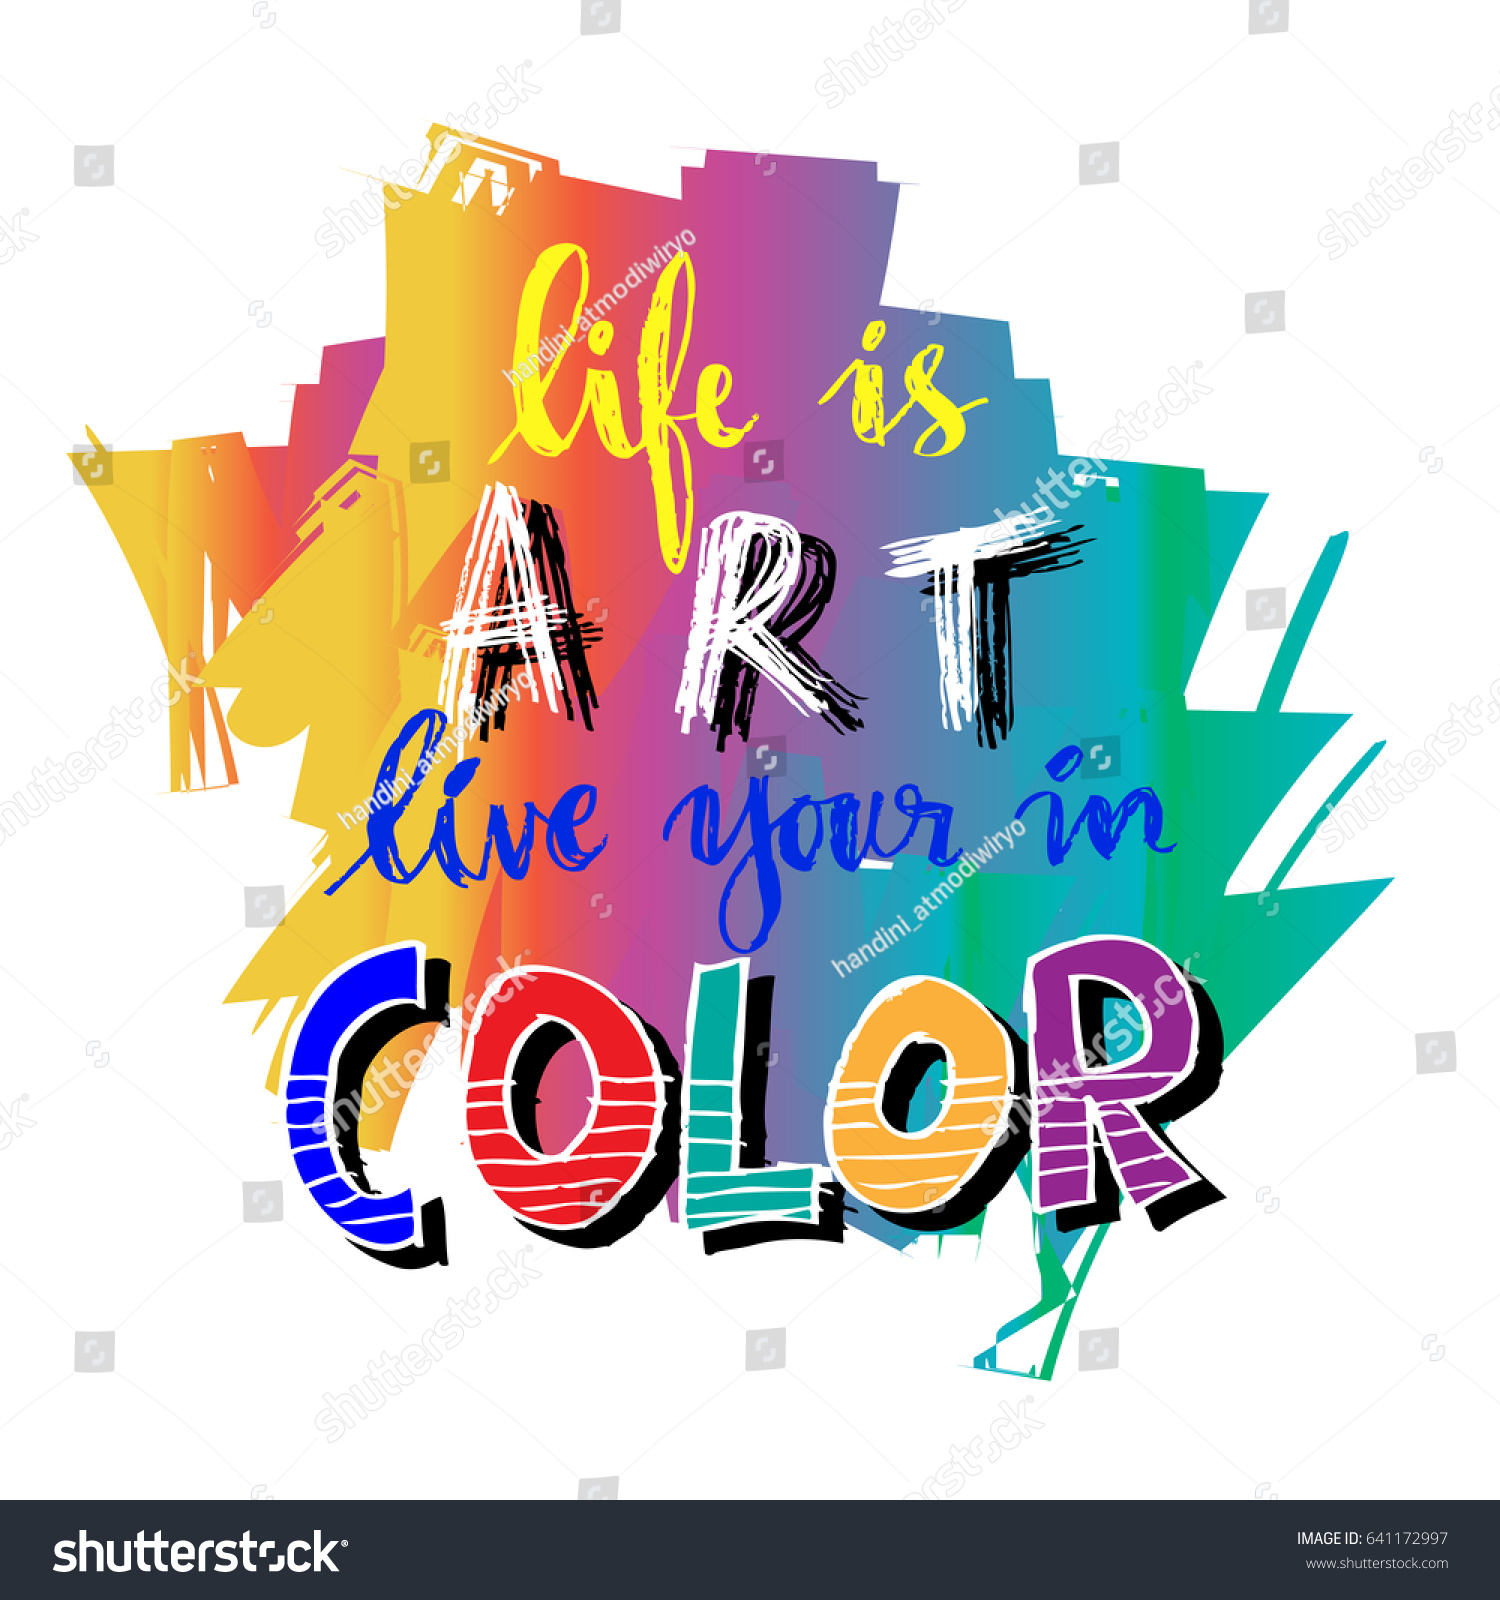 Color Your Life Quotes Life Art Live Your Color Hand Stock Vector 641172997  Shutterstock